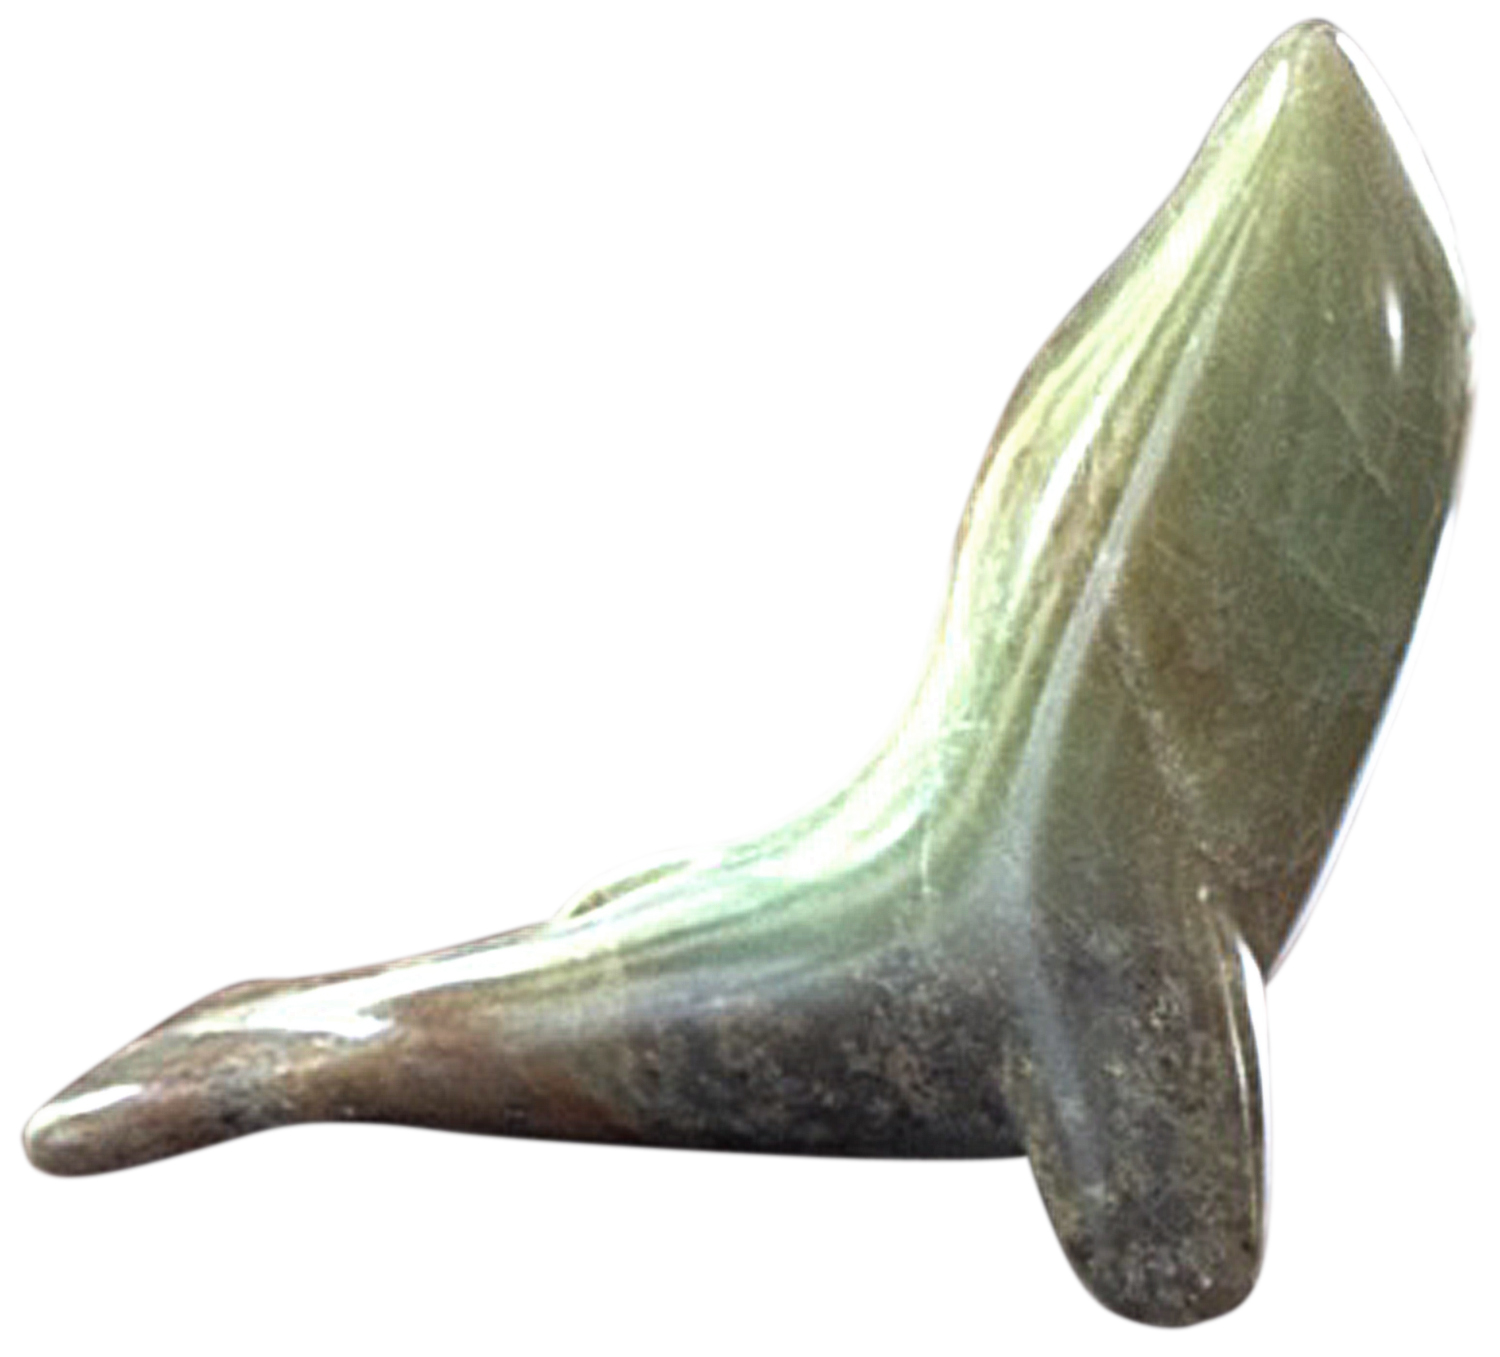 Soapstone Whale Sculpture Carving Kit